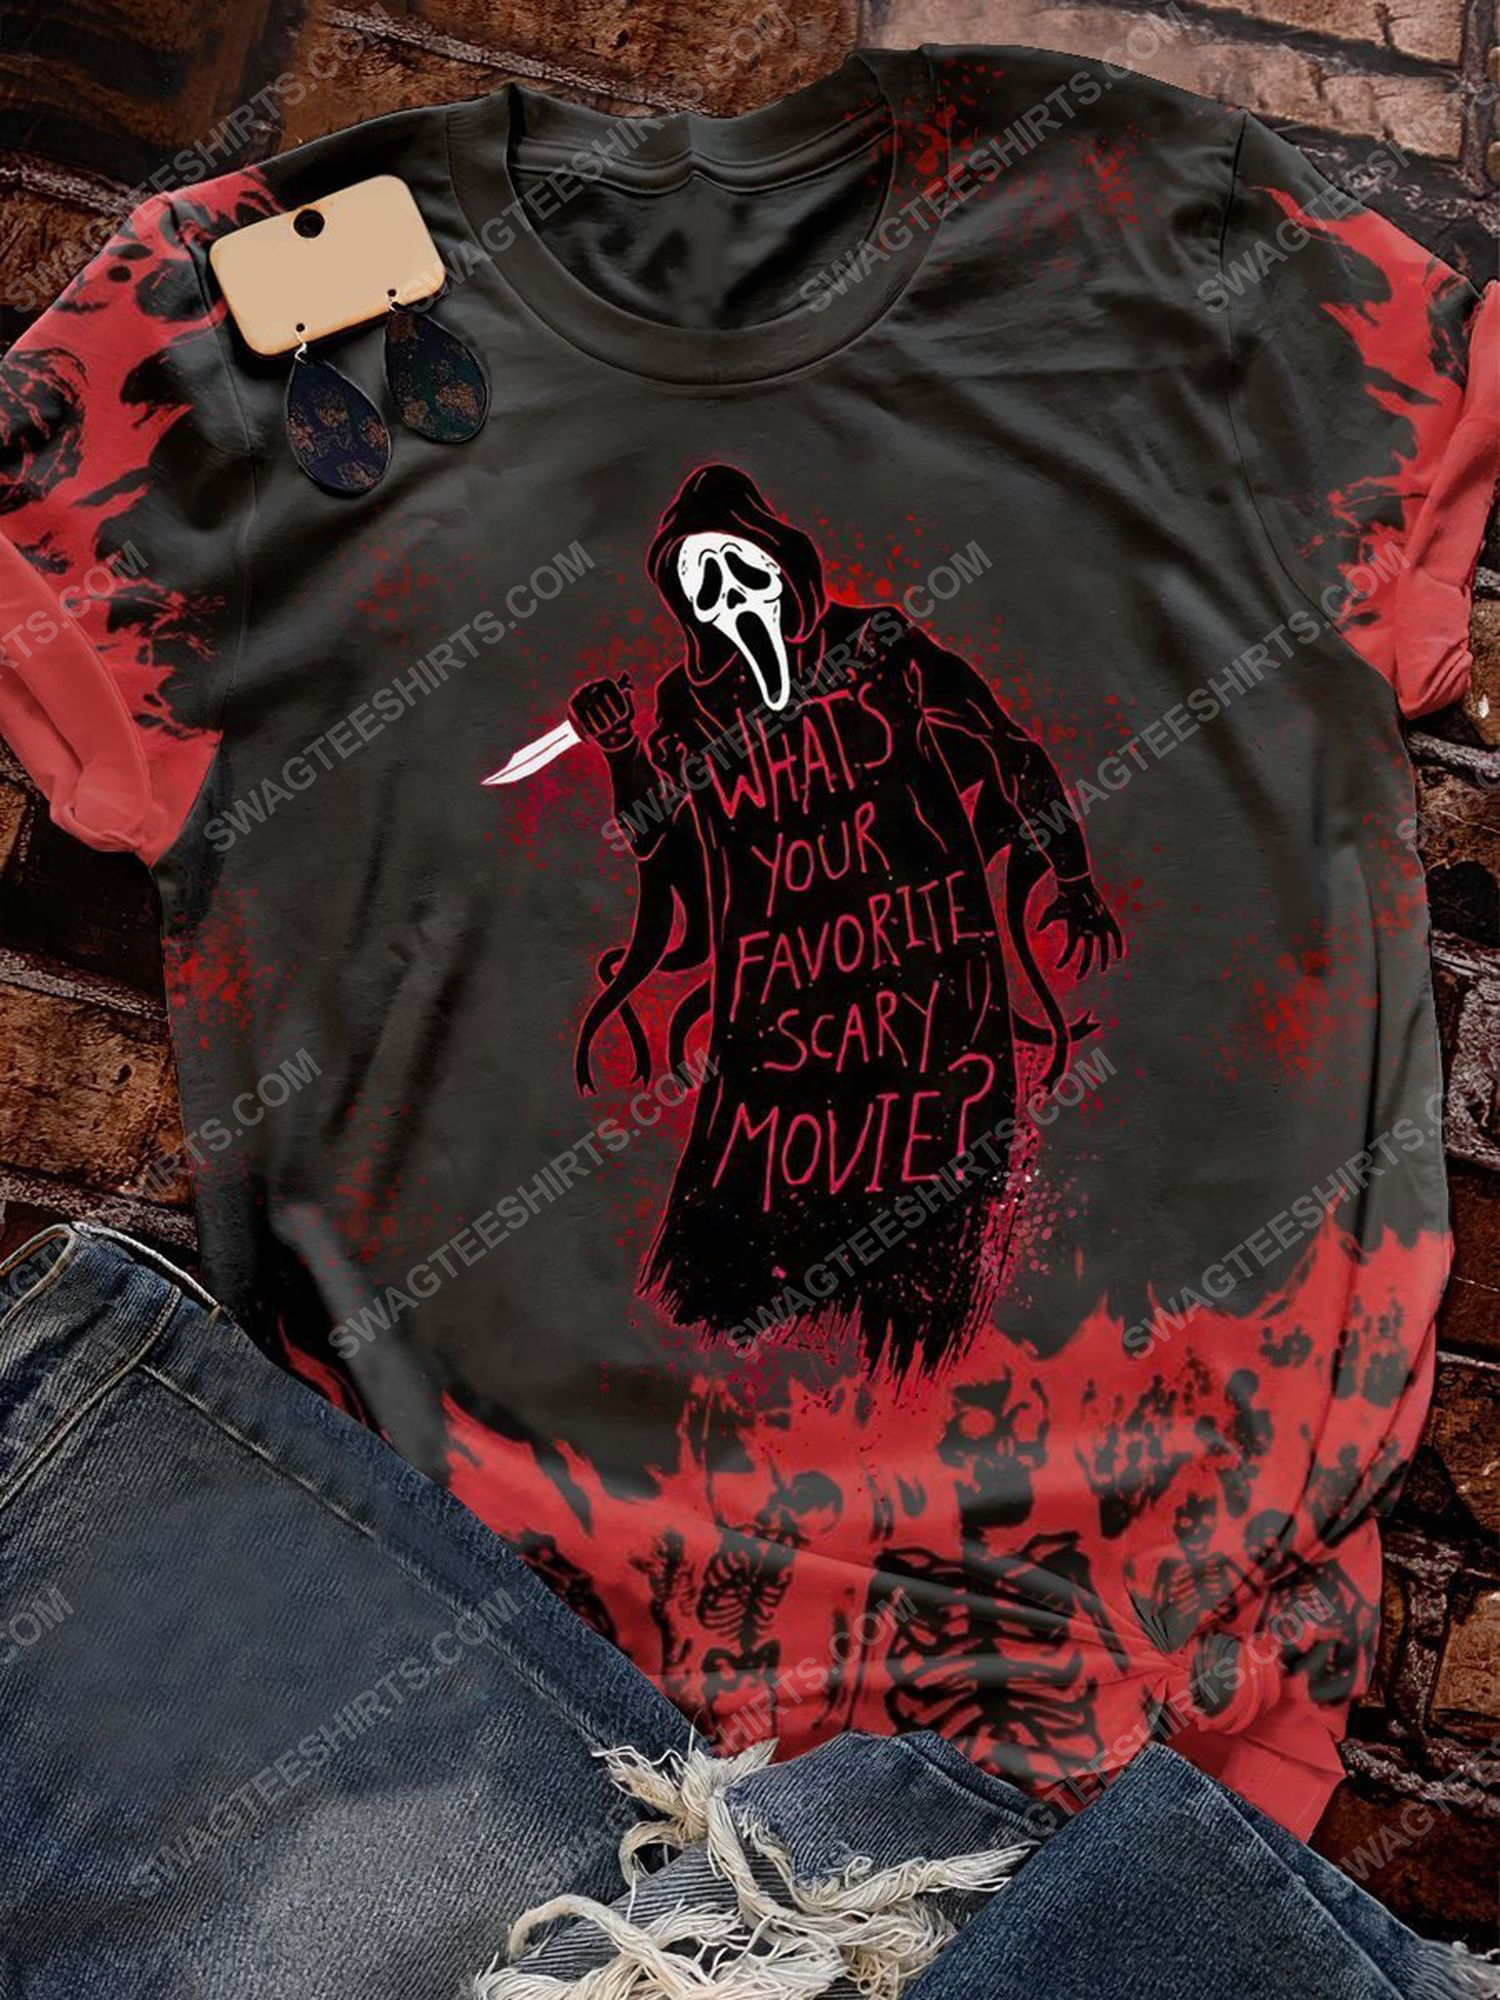 Halloween what's your favorite scary movie screaming movie shirt 1 - Copy (2)